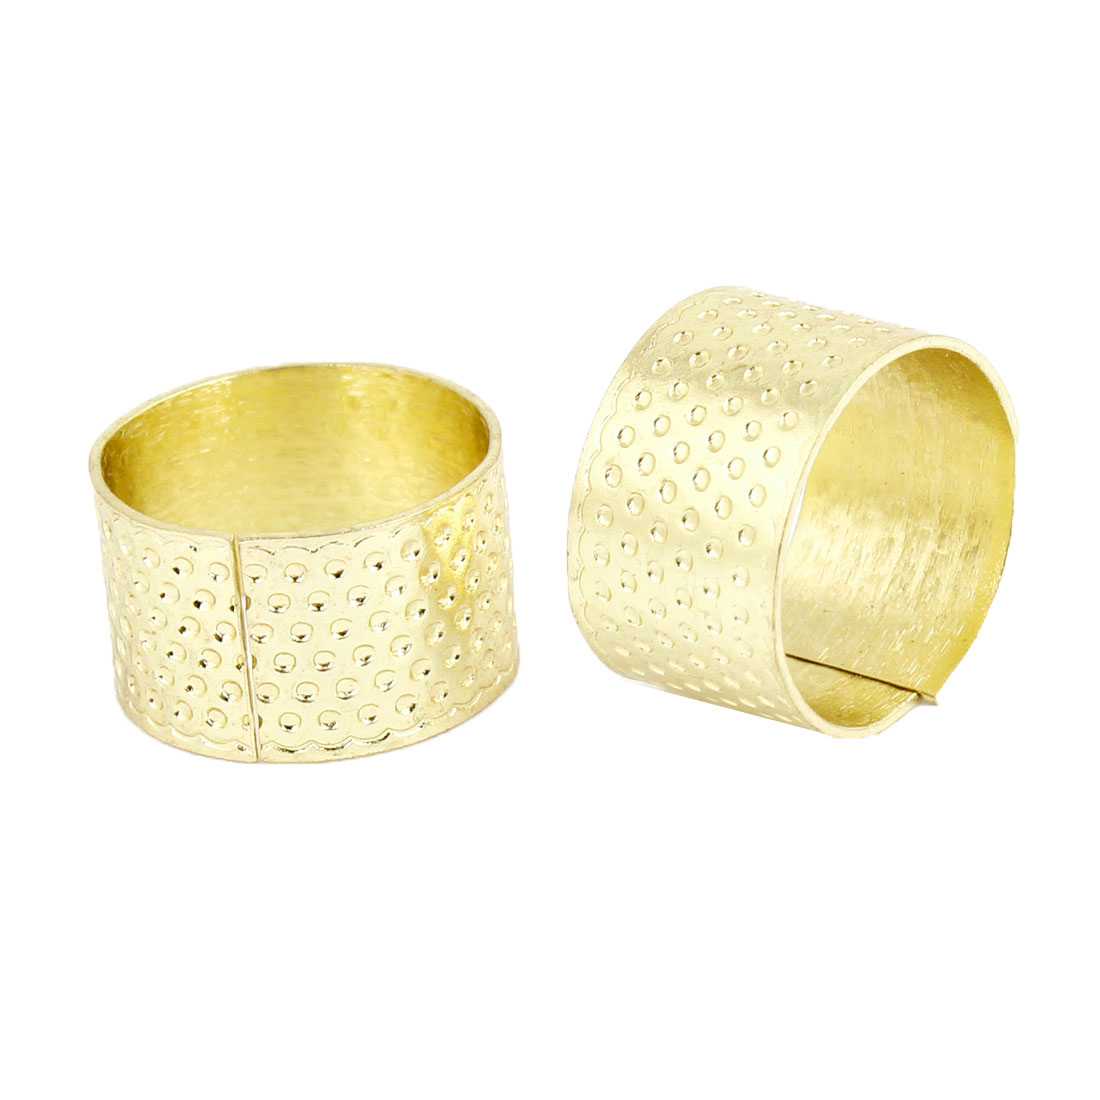 Tailoring Sewing Gold Tone Metal Reeded Thimble Ring 2 PCS